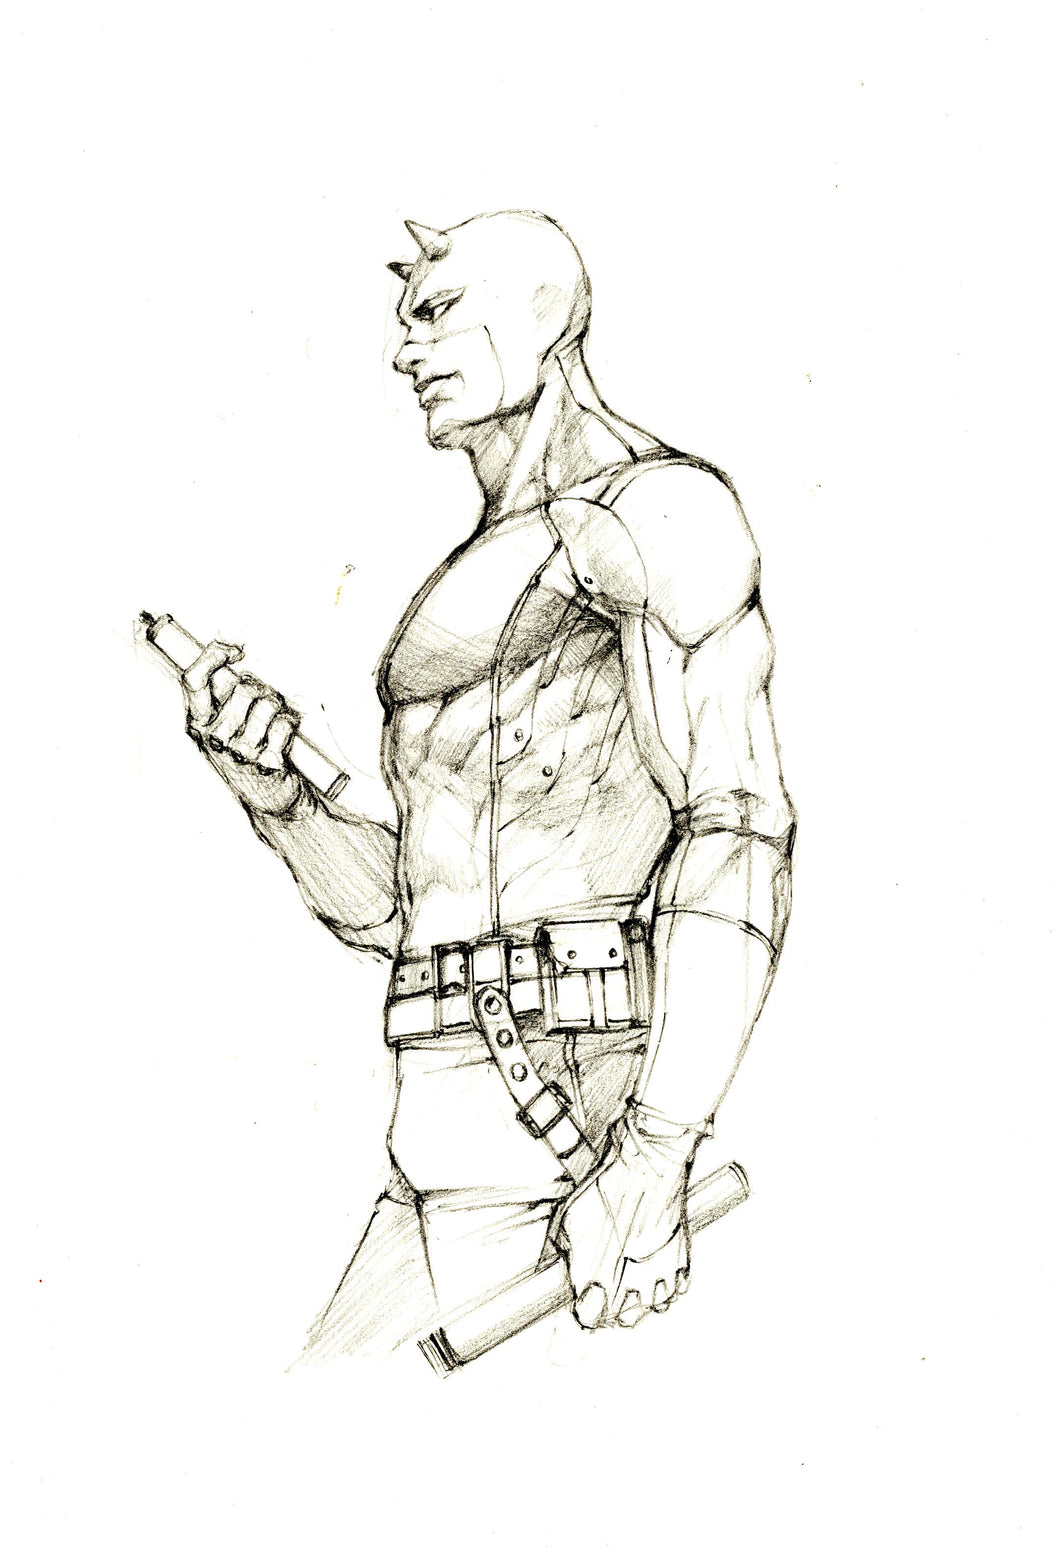 InHyuk Lee Daredevil (V2) Pencil Sketch